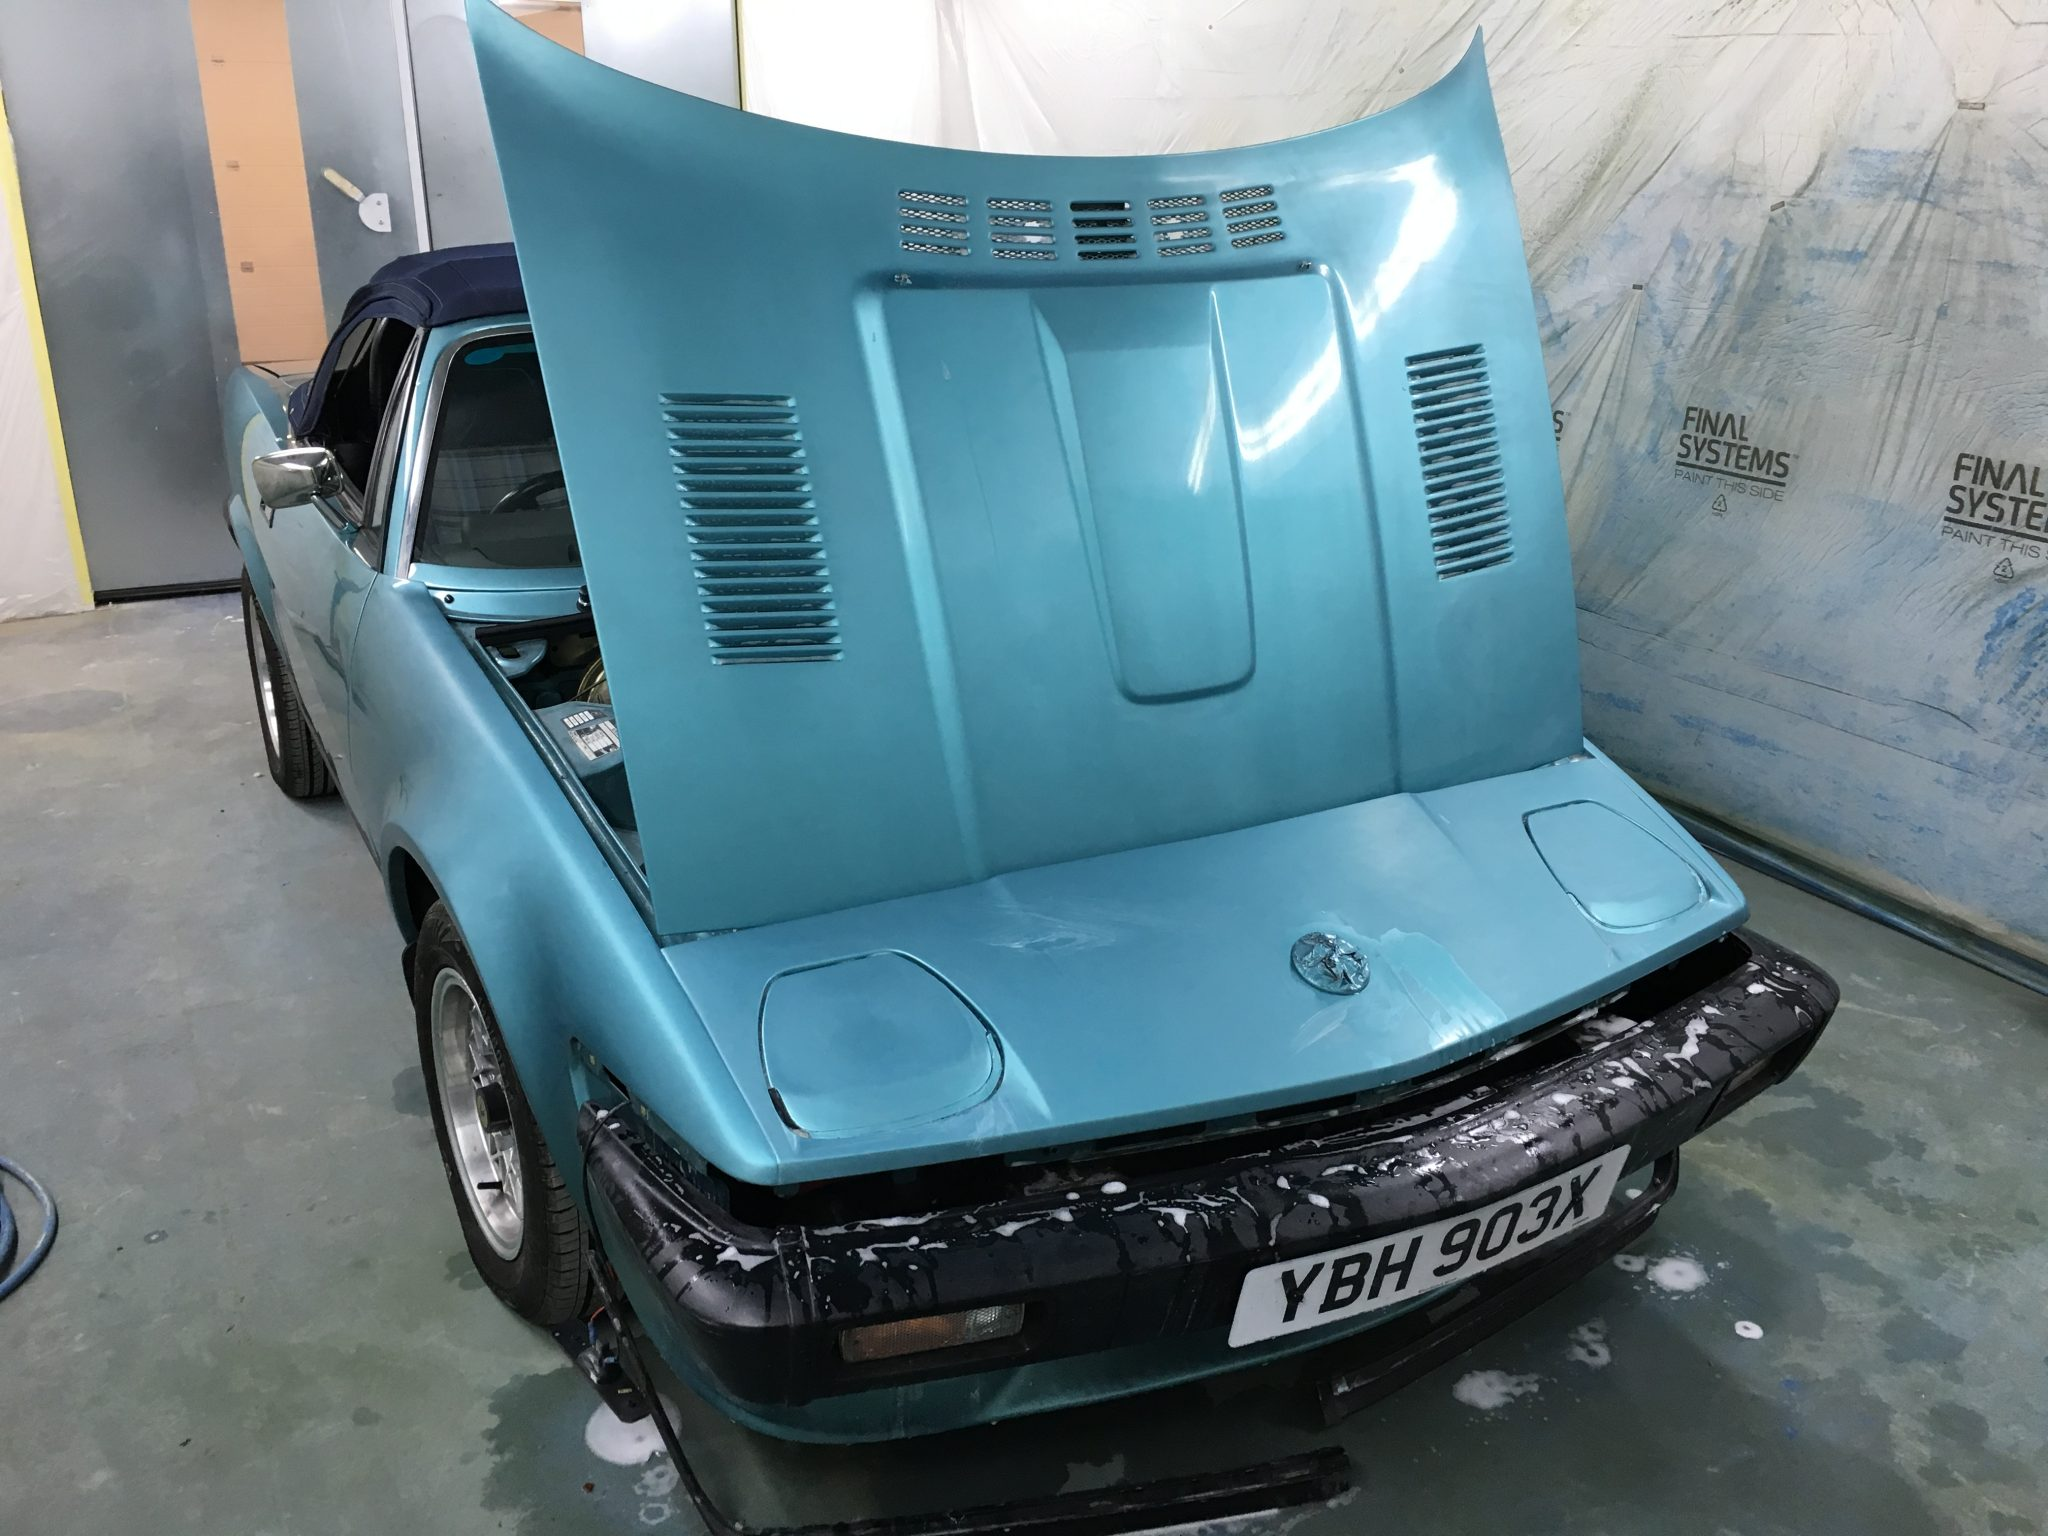 Painting the front end of our TR7 V8